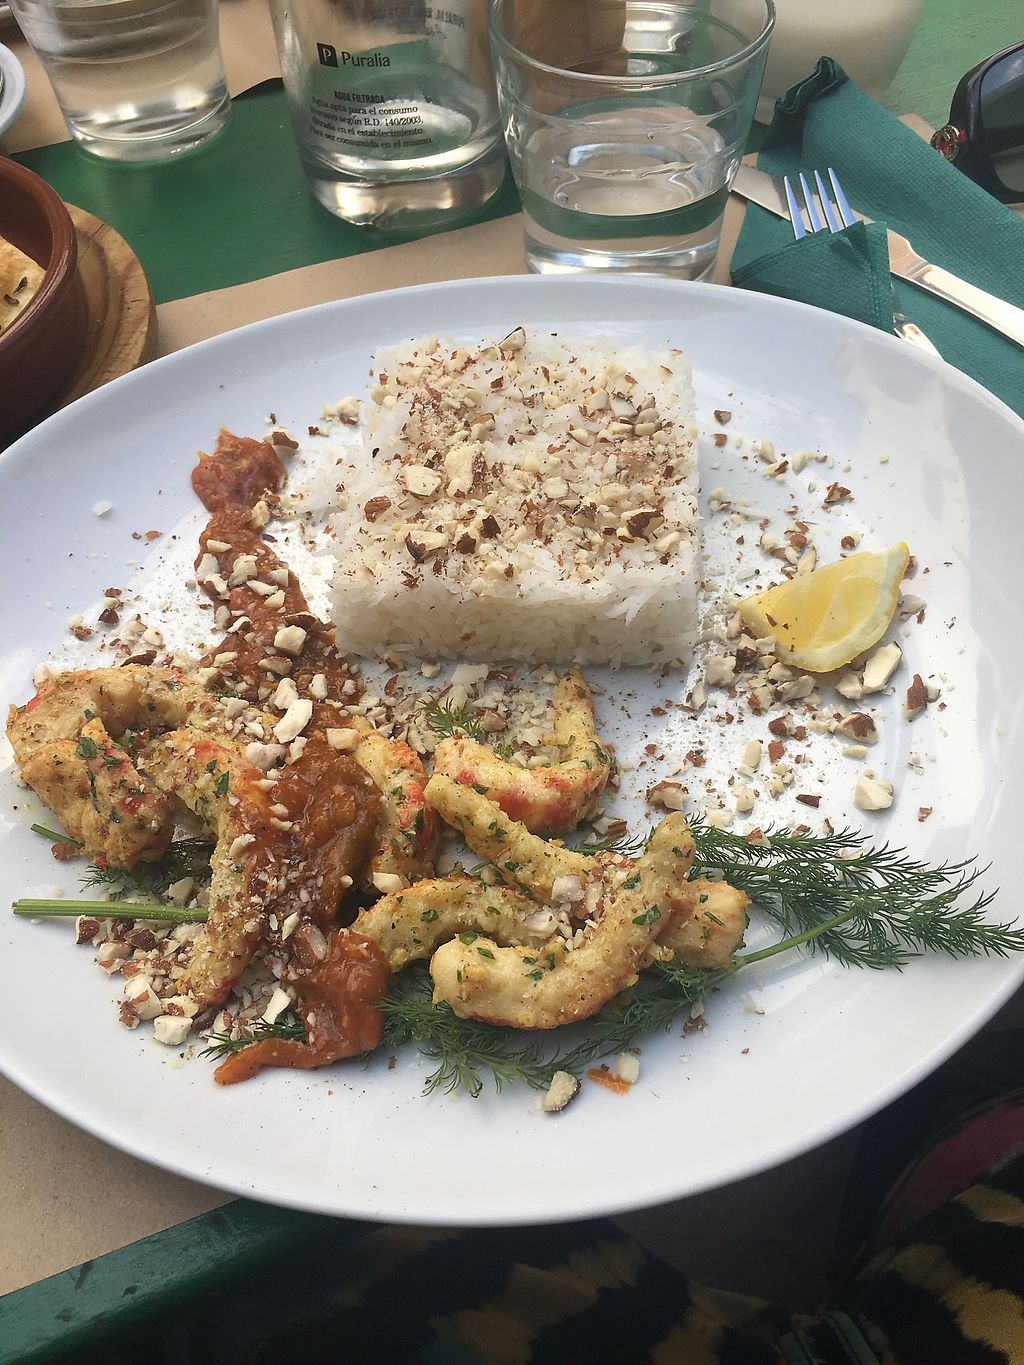 "Photo of Fuori di Zucca  by <a href=""/members/profile/kiiabby"">kiiabby</a> <br/>Vegan prawns with rice and curry sauce  <br/> April 4, 2018  - <a href='/contact/abuse/image/71702/380831'>Report</a>"